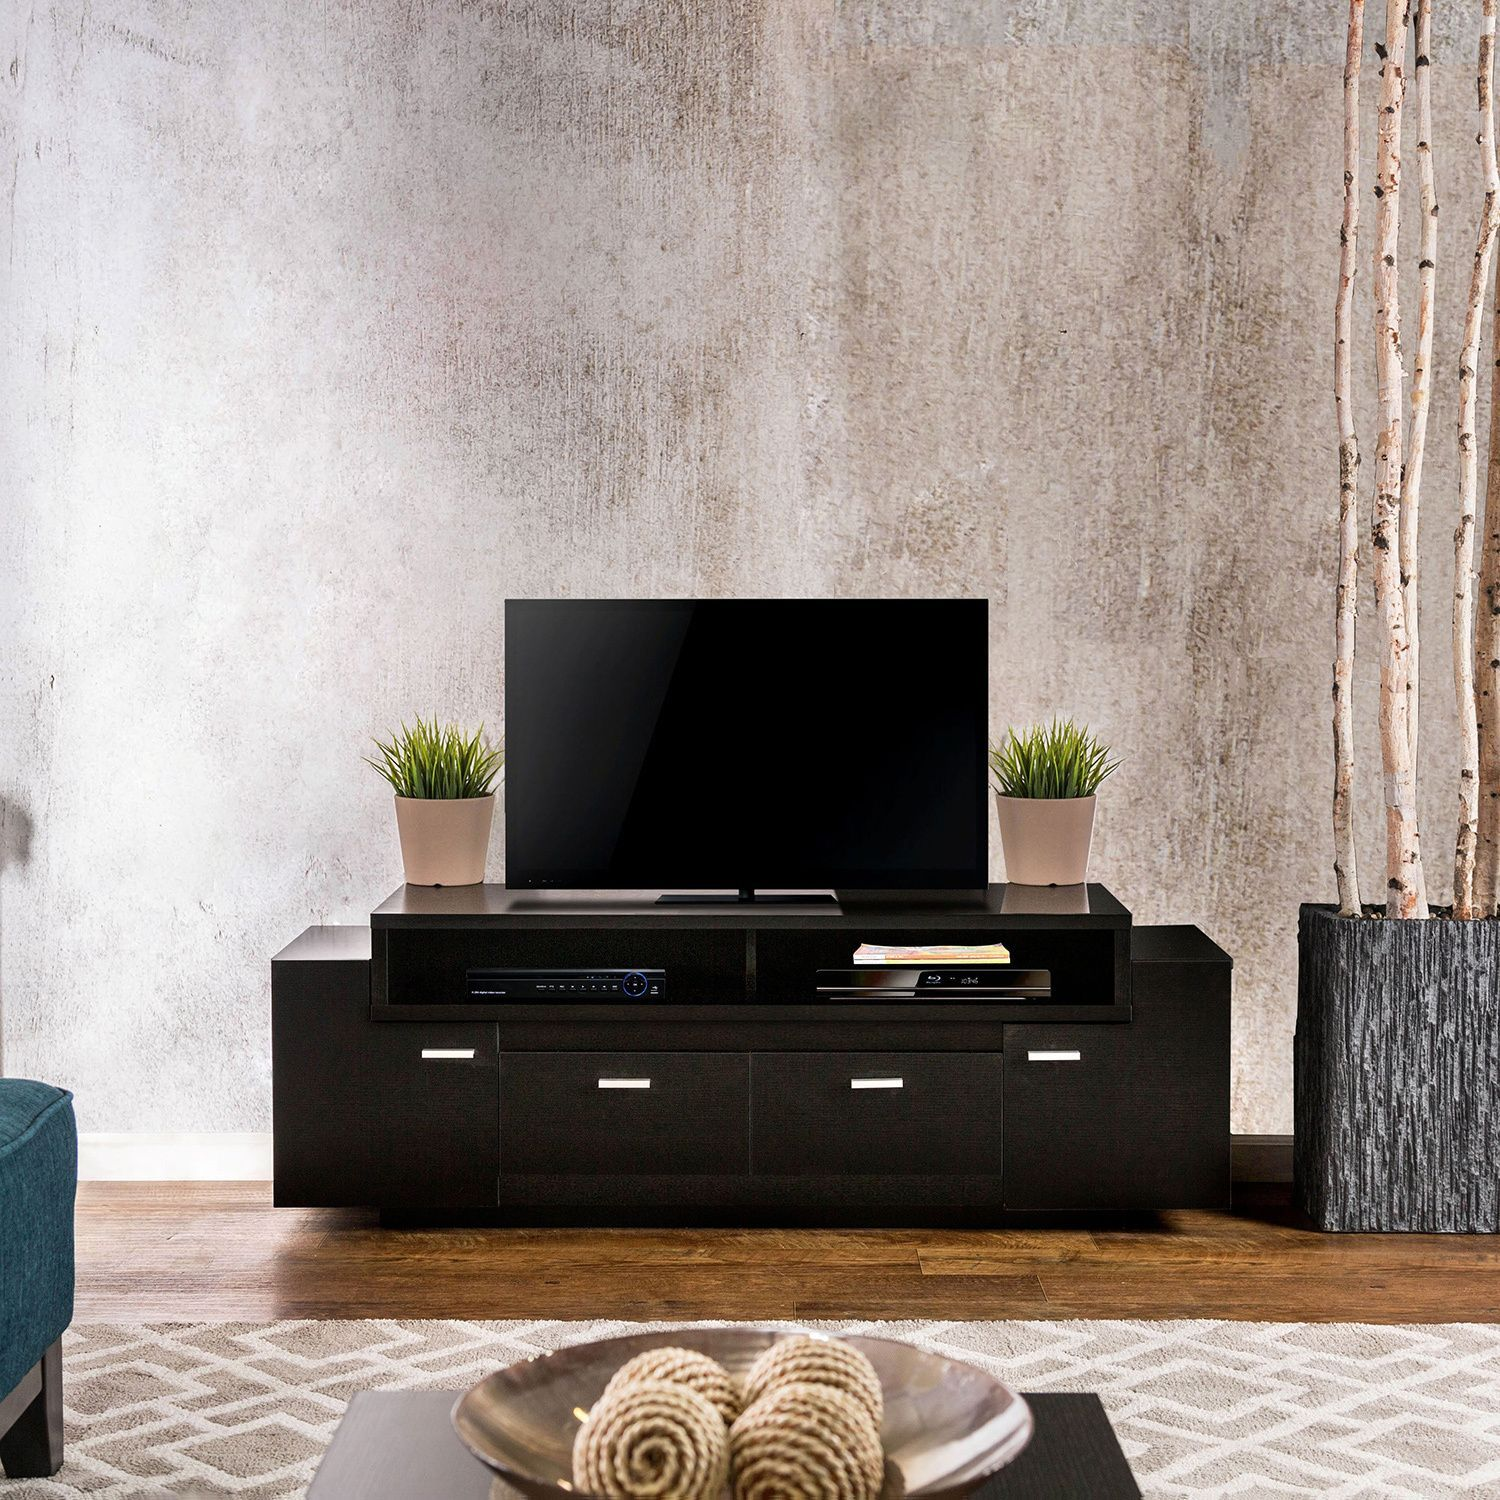 Available in two finishes, this 60-inch TV stand is a sure fit for any living space. The spacious shelving compartments and convenient cabinet and drawers pair wonderfully to create the ultimate entertainment center.